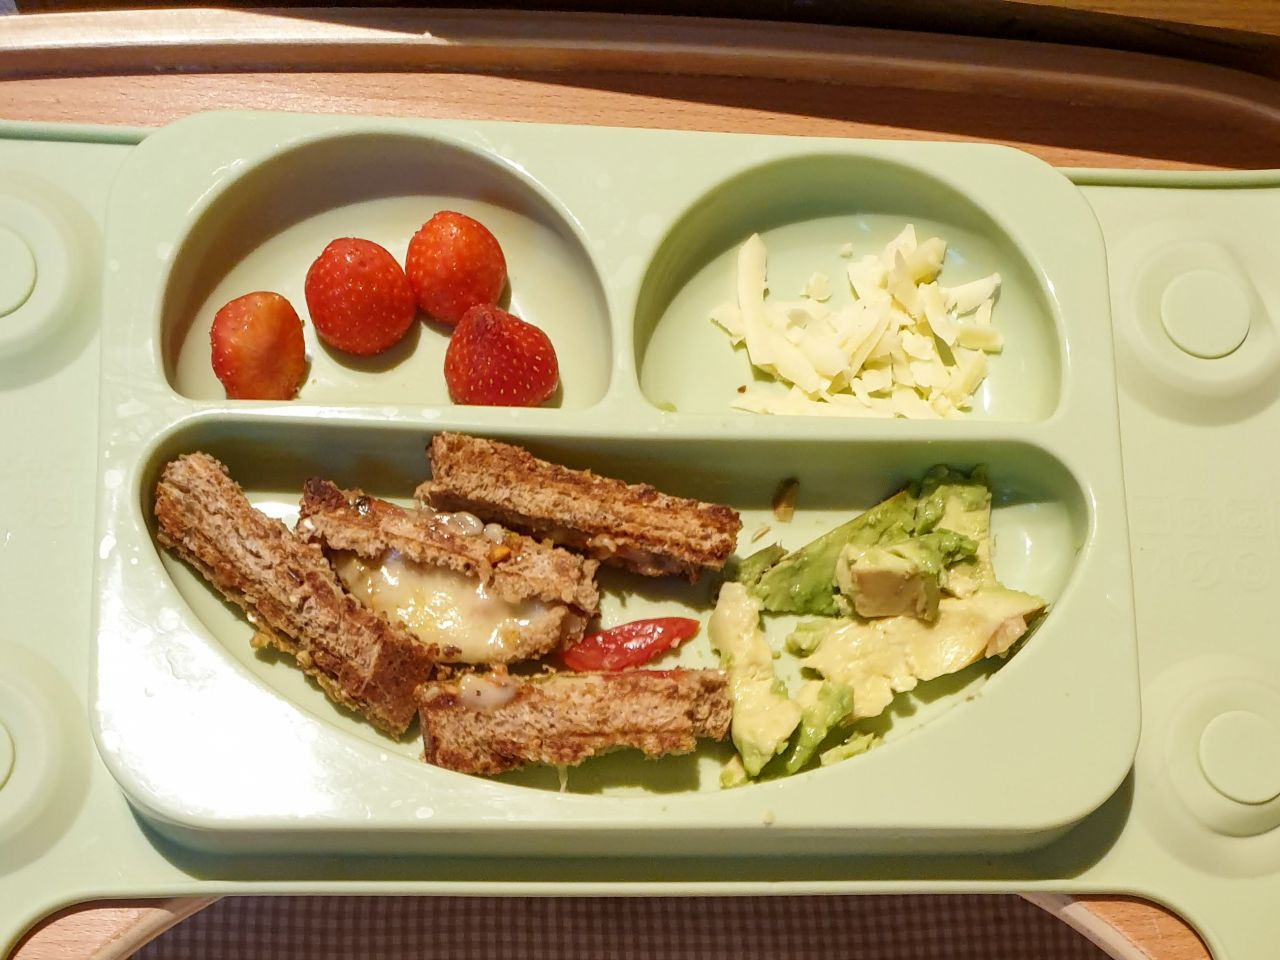 baby led weaning meal - cheese toast with tomatoes, cheese and avocado